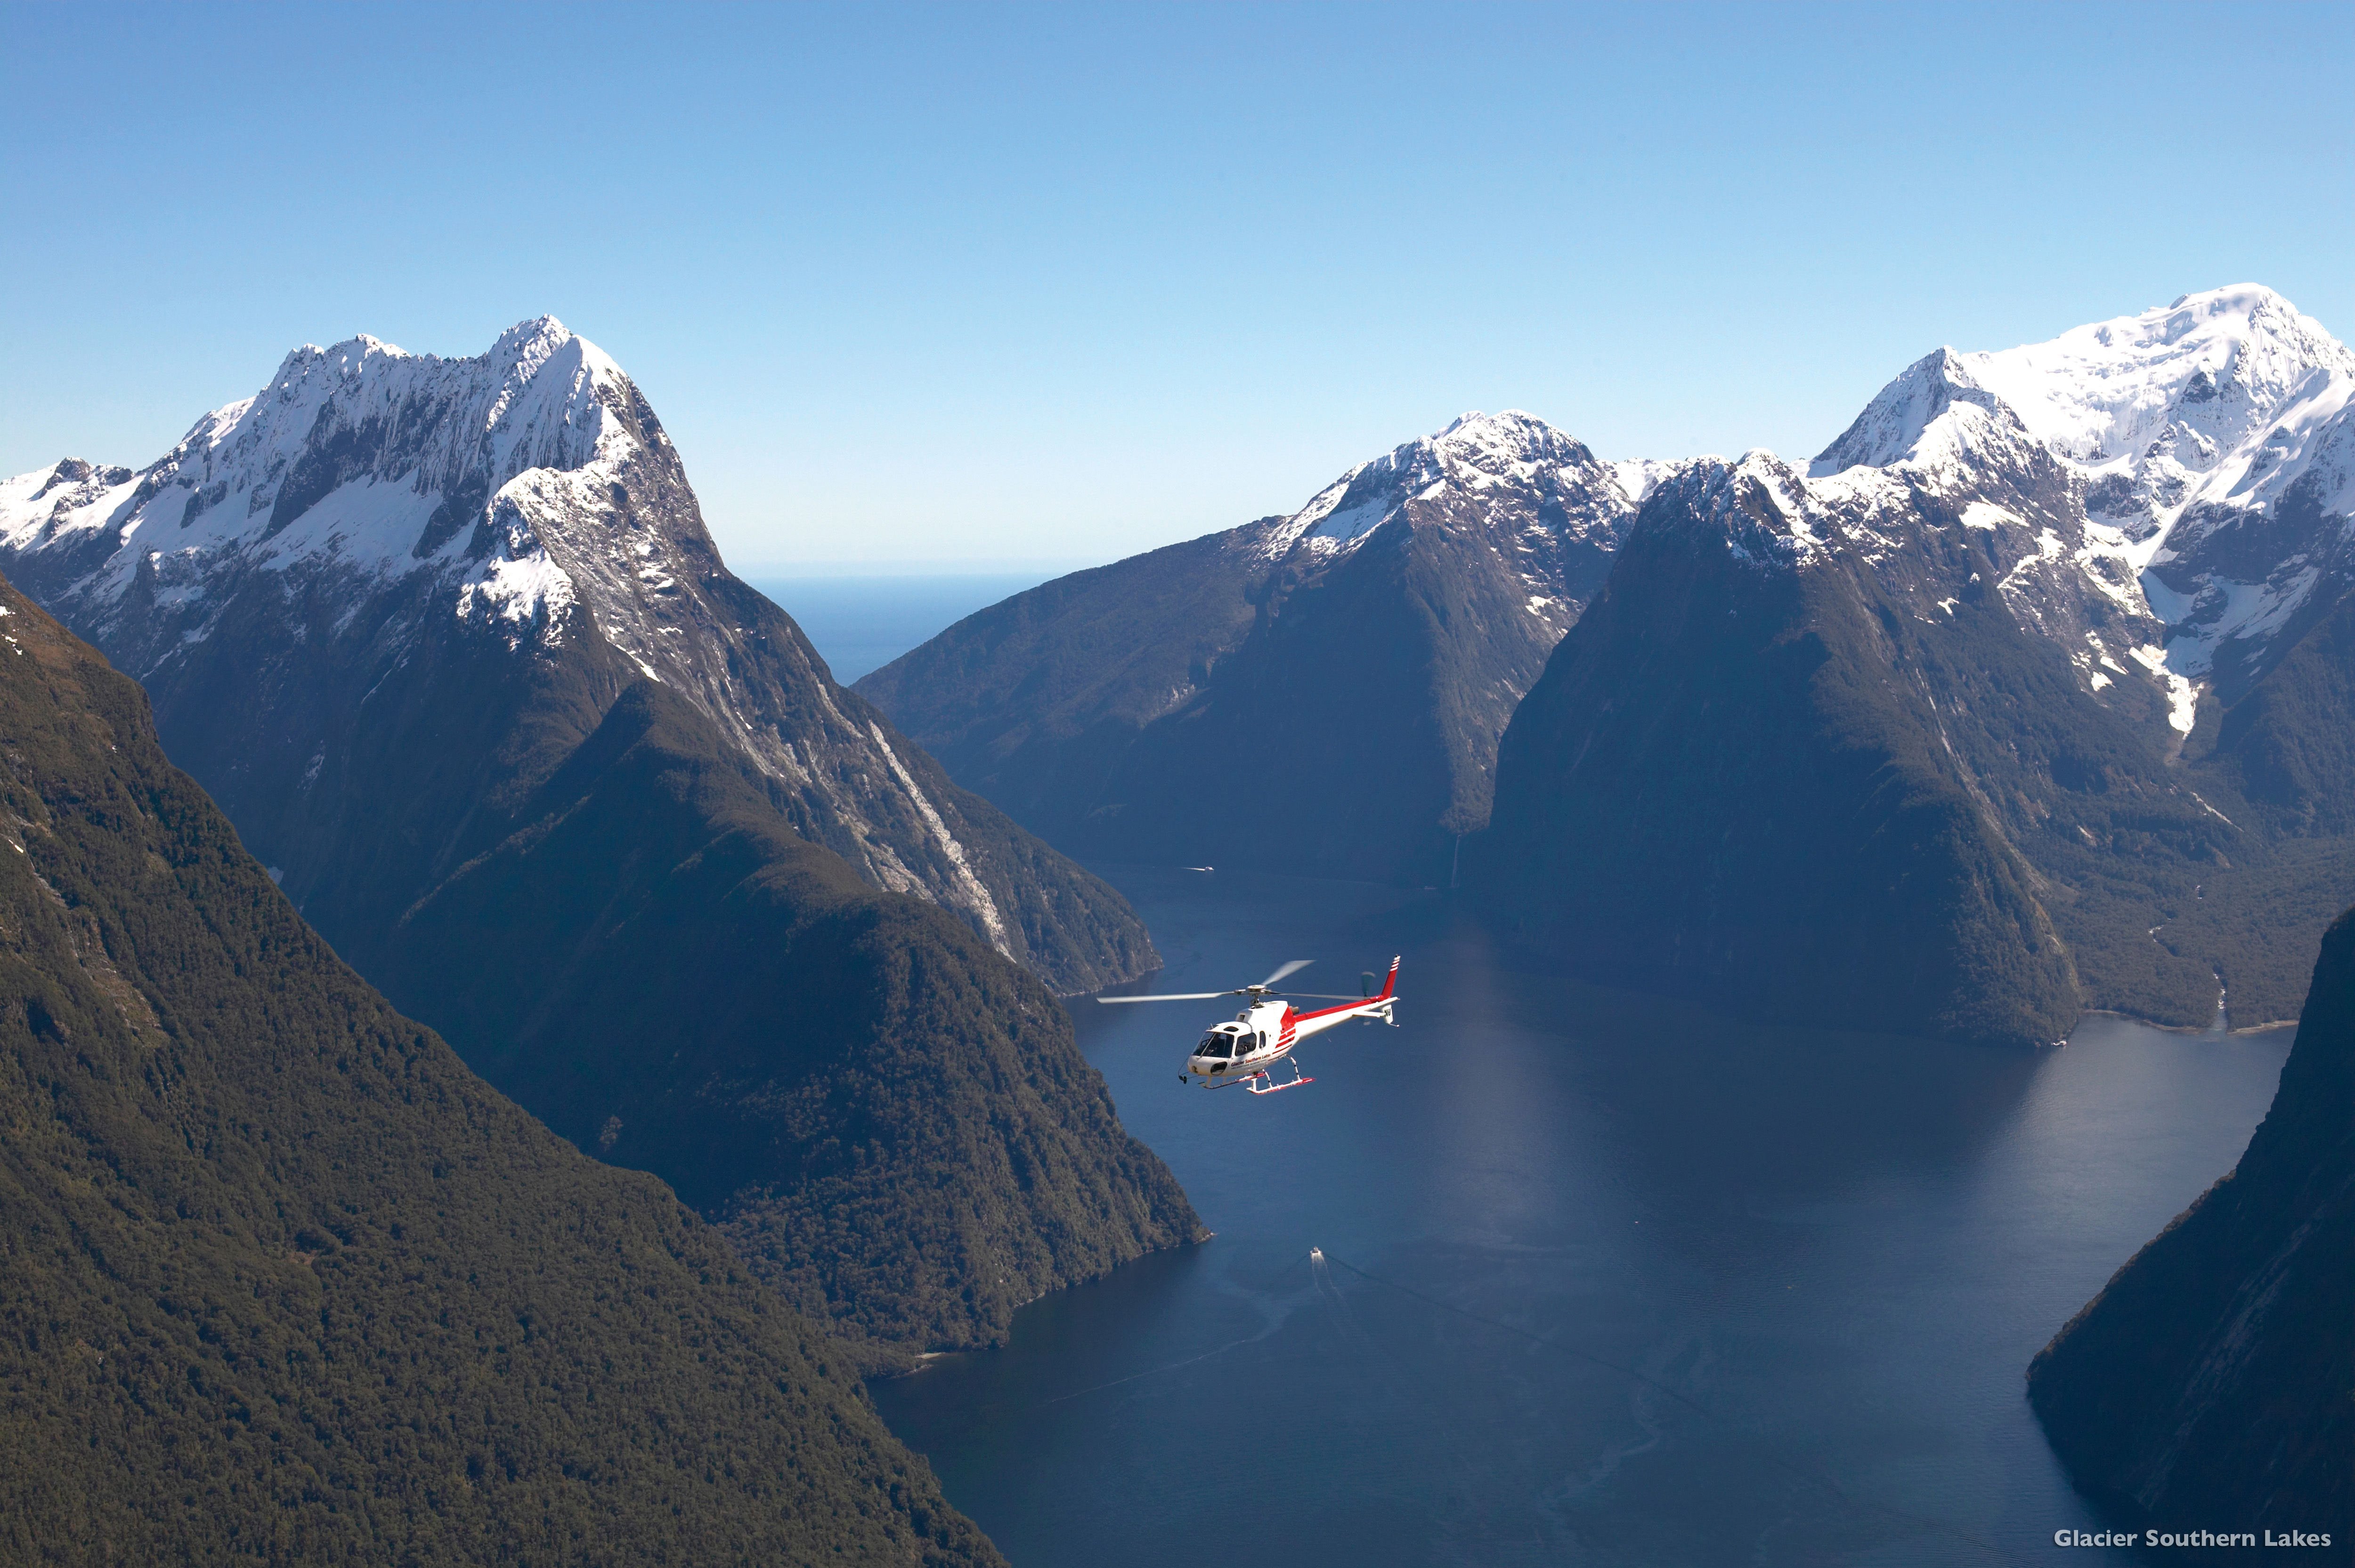 7 Ways To Make The Most Of A Winter Trip To New Zealand